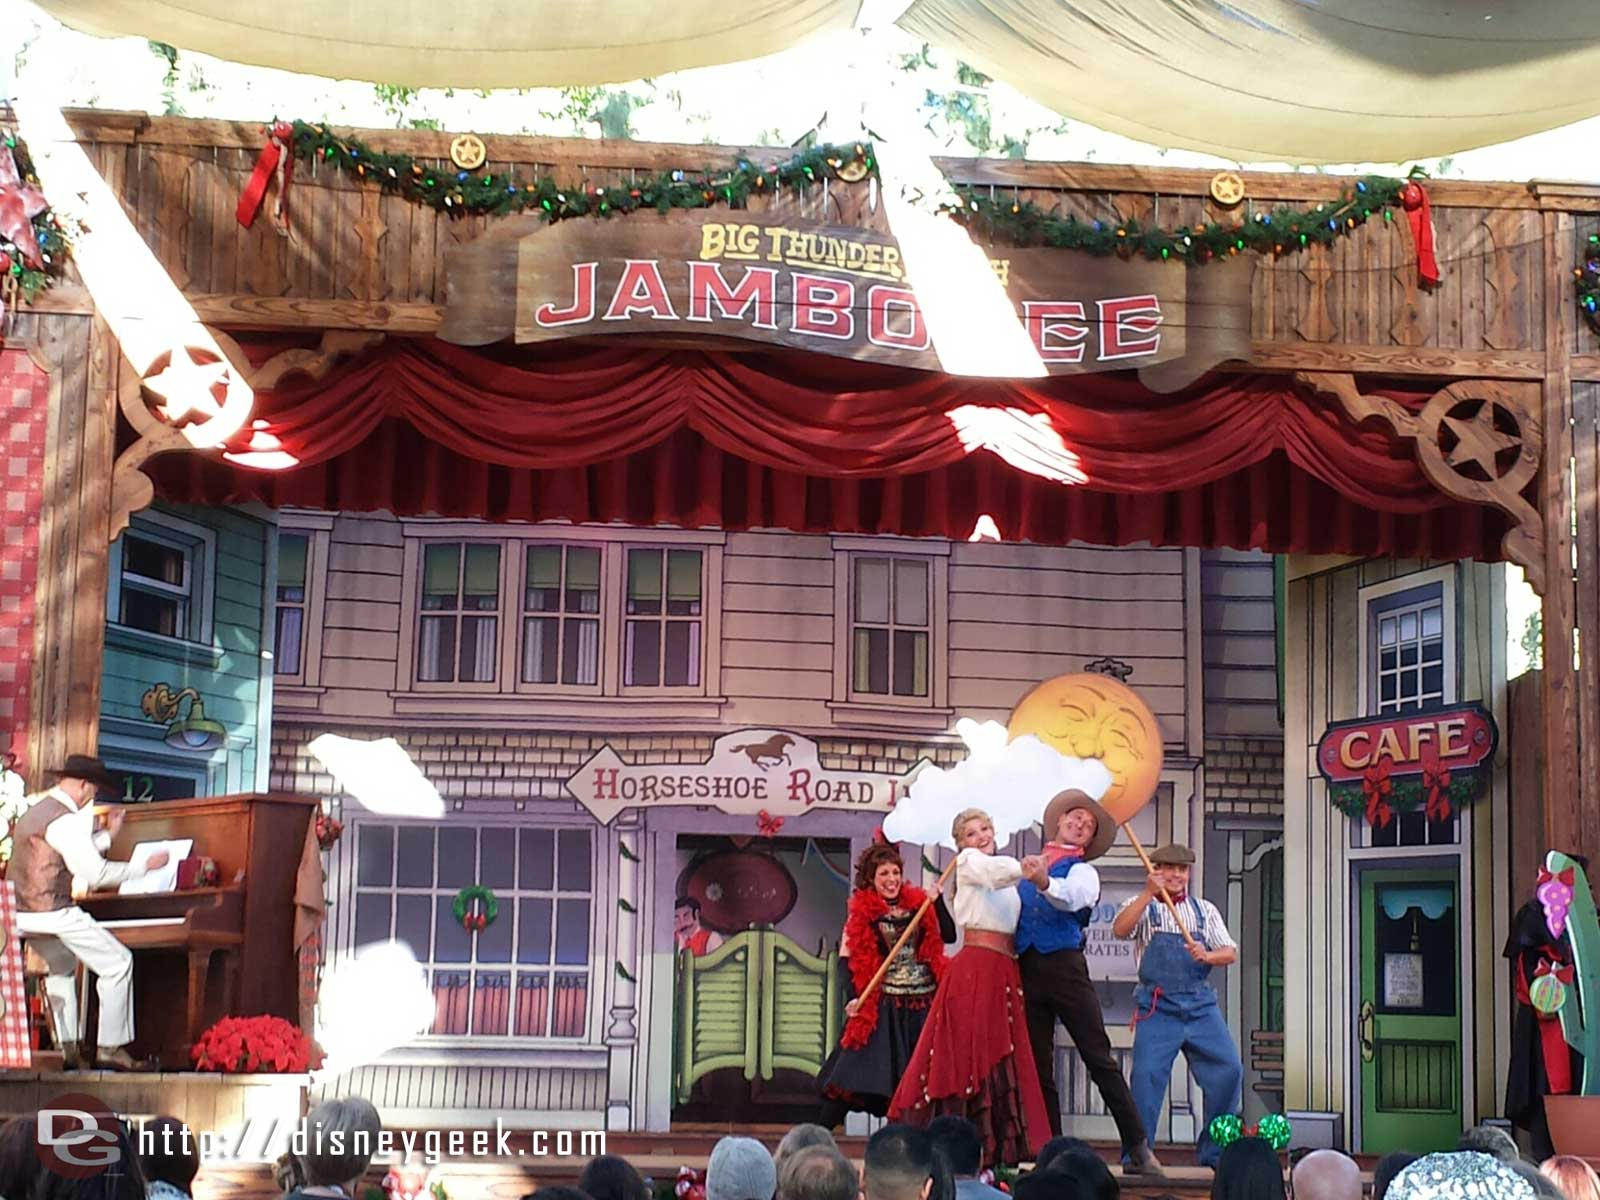 The Plight Before Christmas being performed at the Jingle Jangle Jamboree #Disneyland